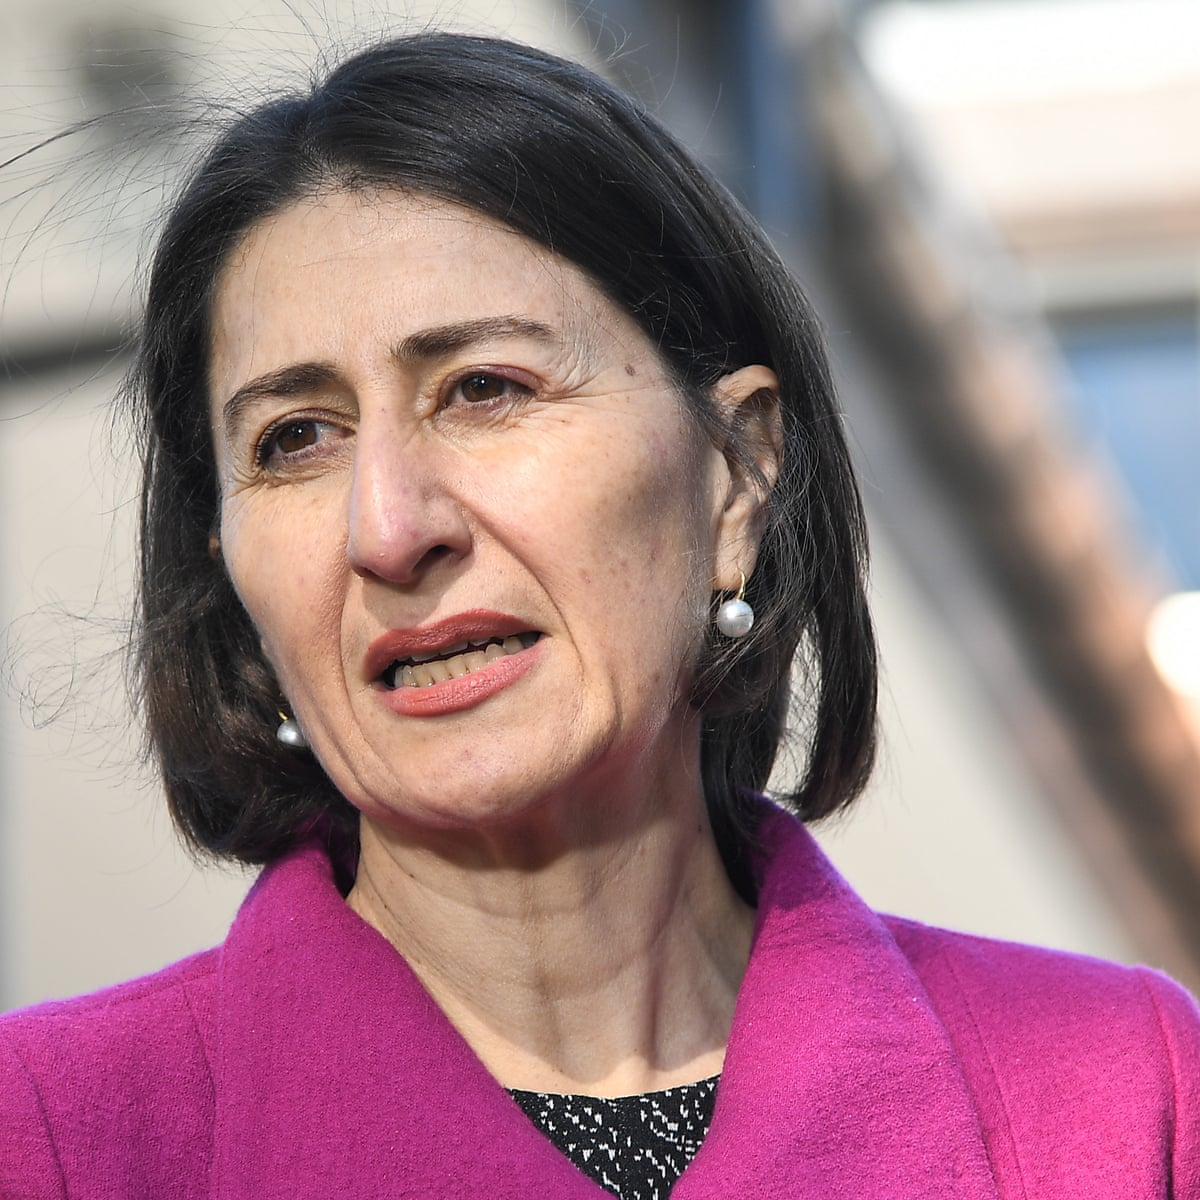 Gladys Berejiklian Urges More Use Of Face Masks As Nsw Faces High Alert State Of Covid 19 Pandemic Health The Guardian